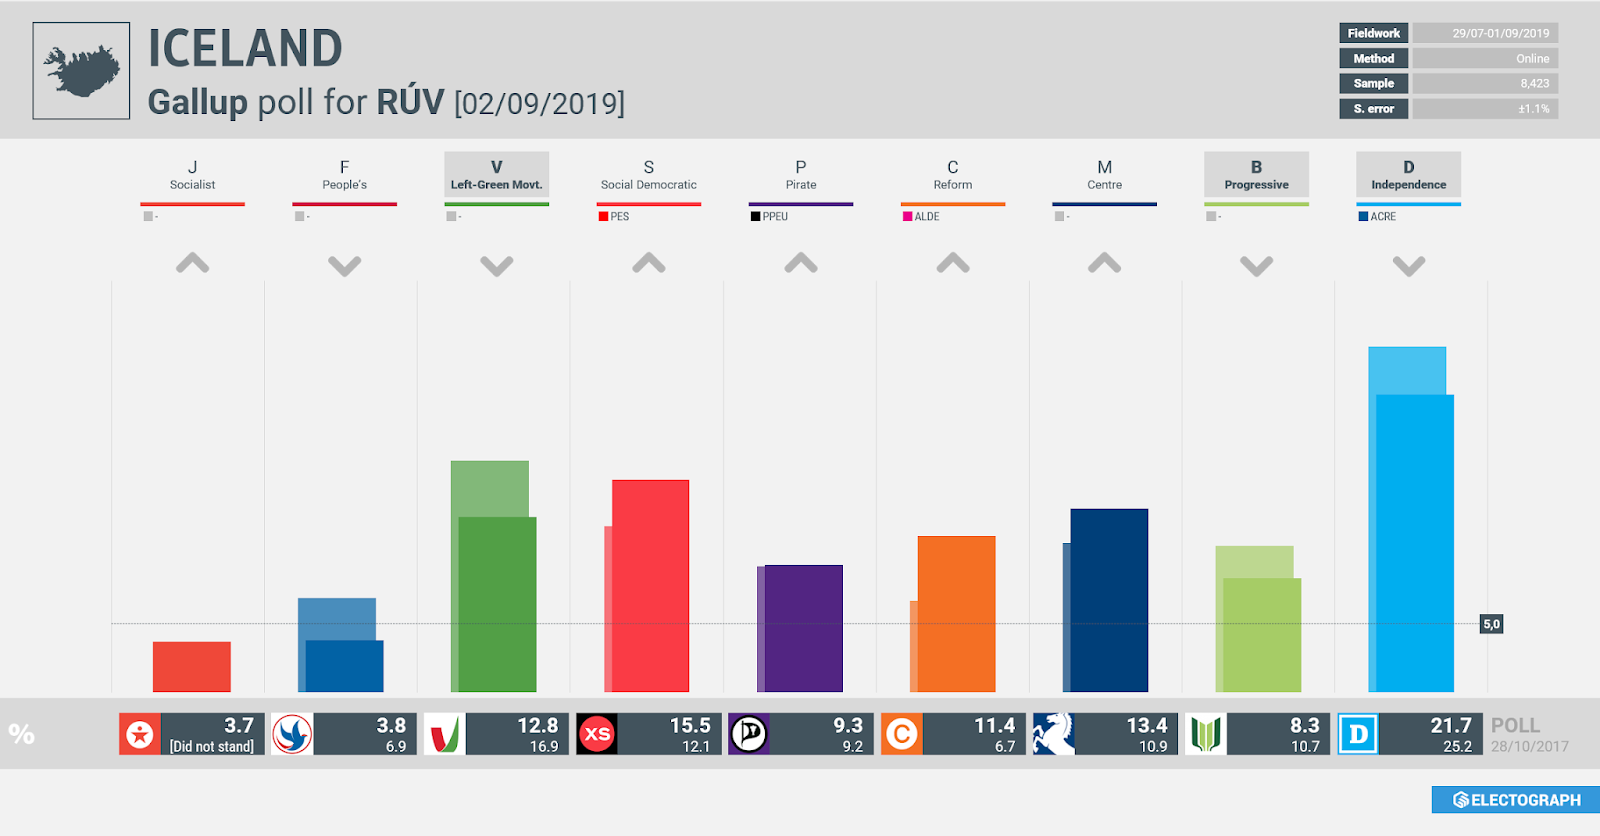 ICELAND: Gallup poll chart for RÚV, 2 September 2019